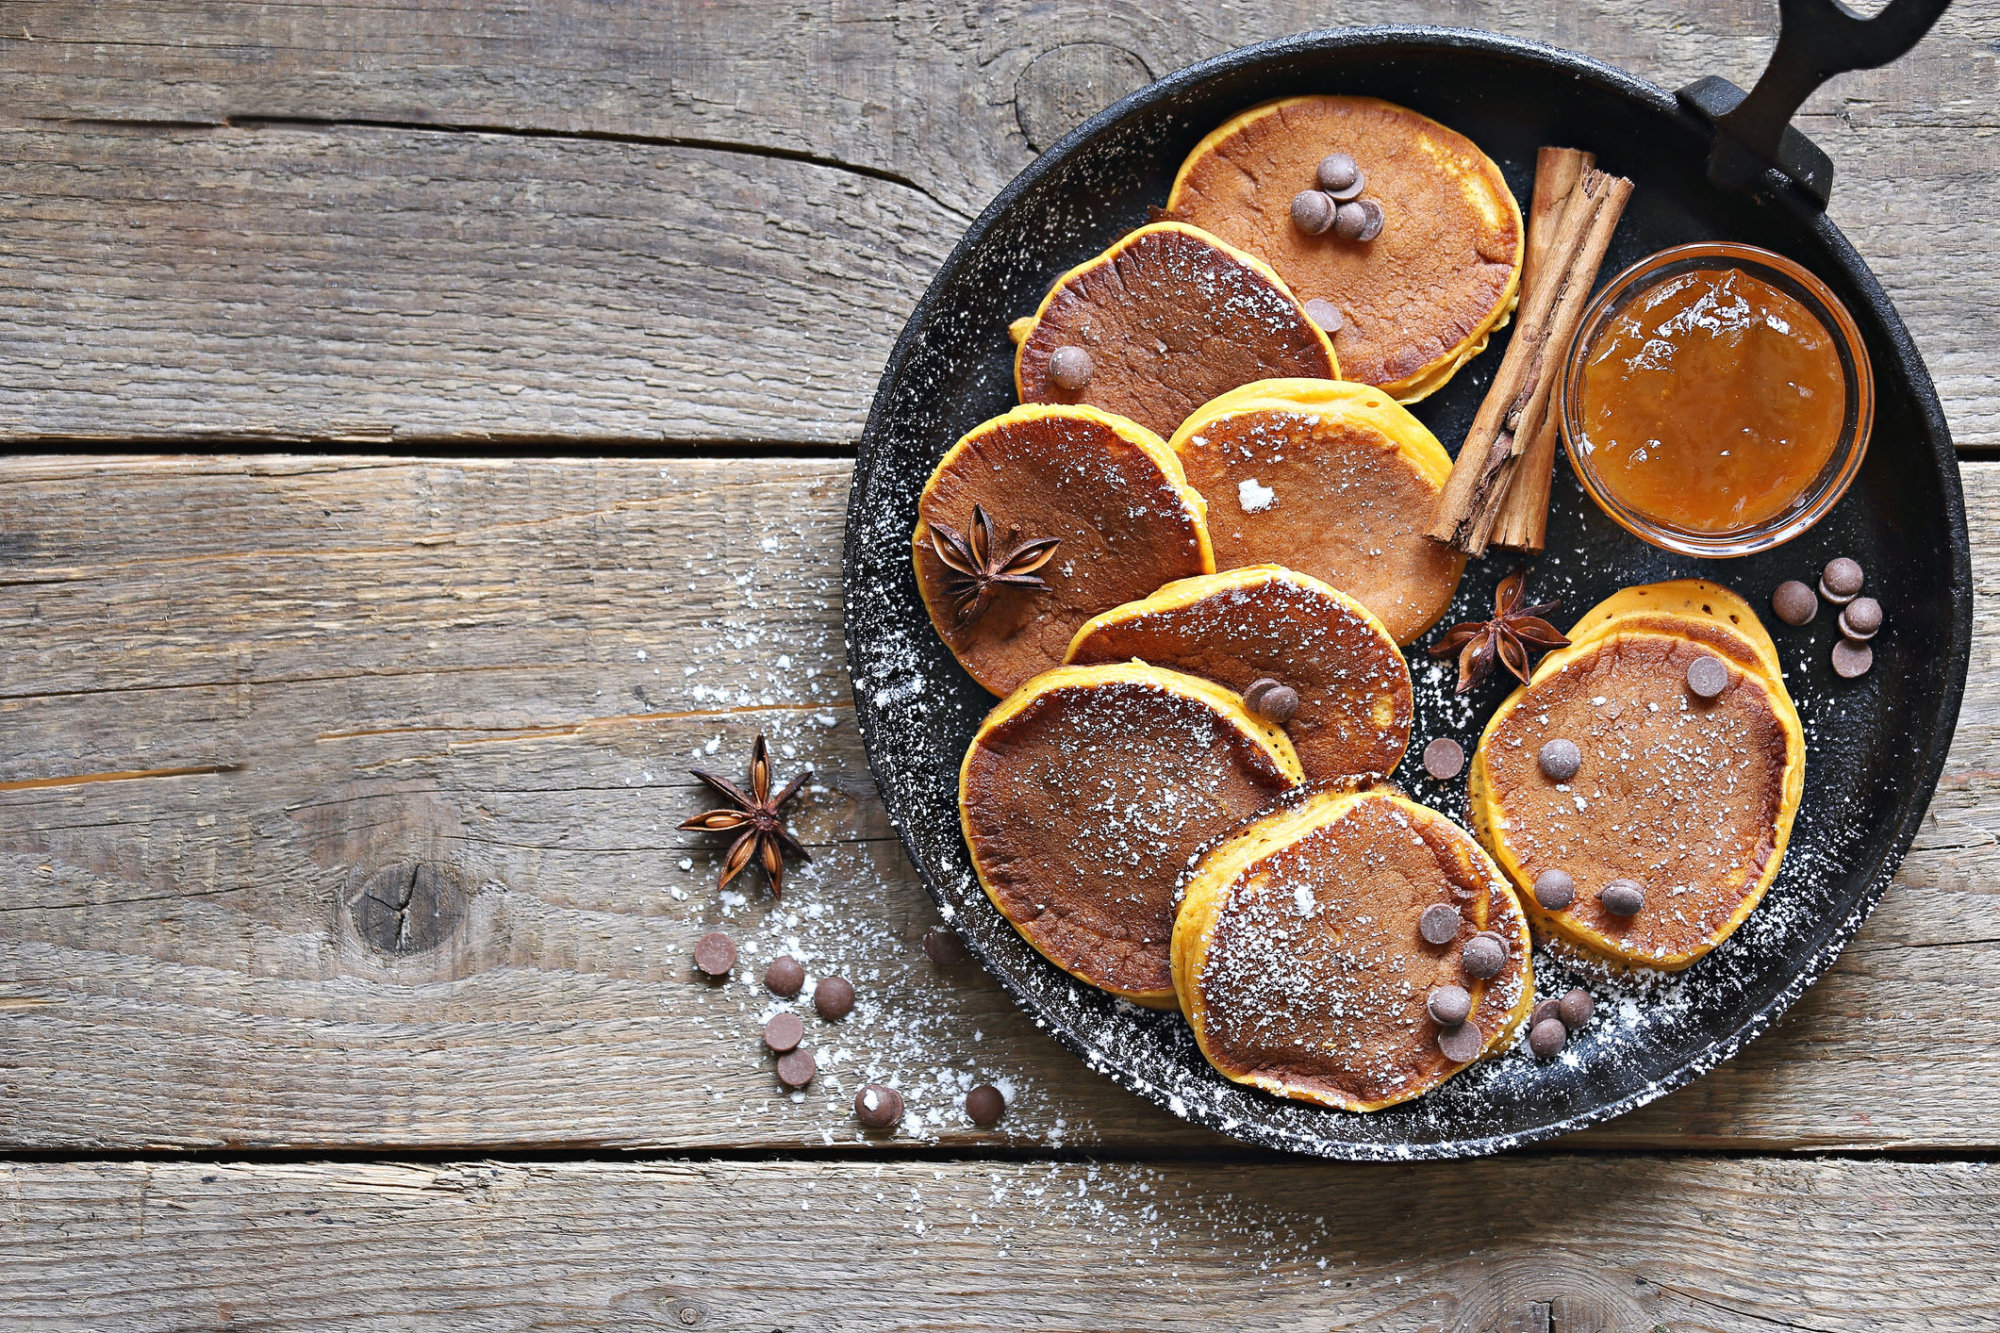 Pumpkin pancakes with chocolate chips. Overhead view